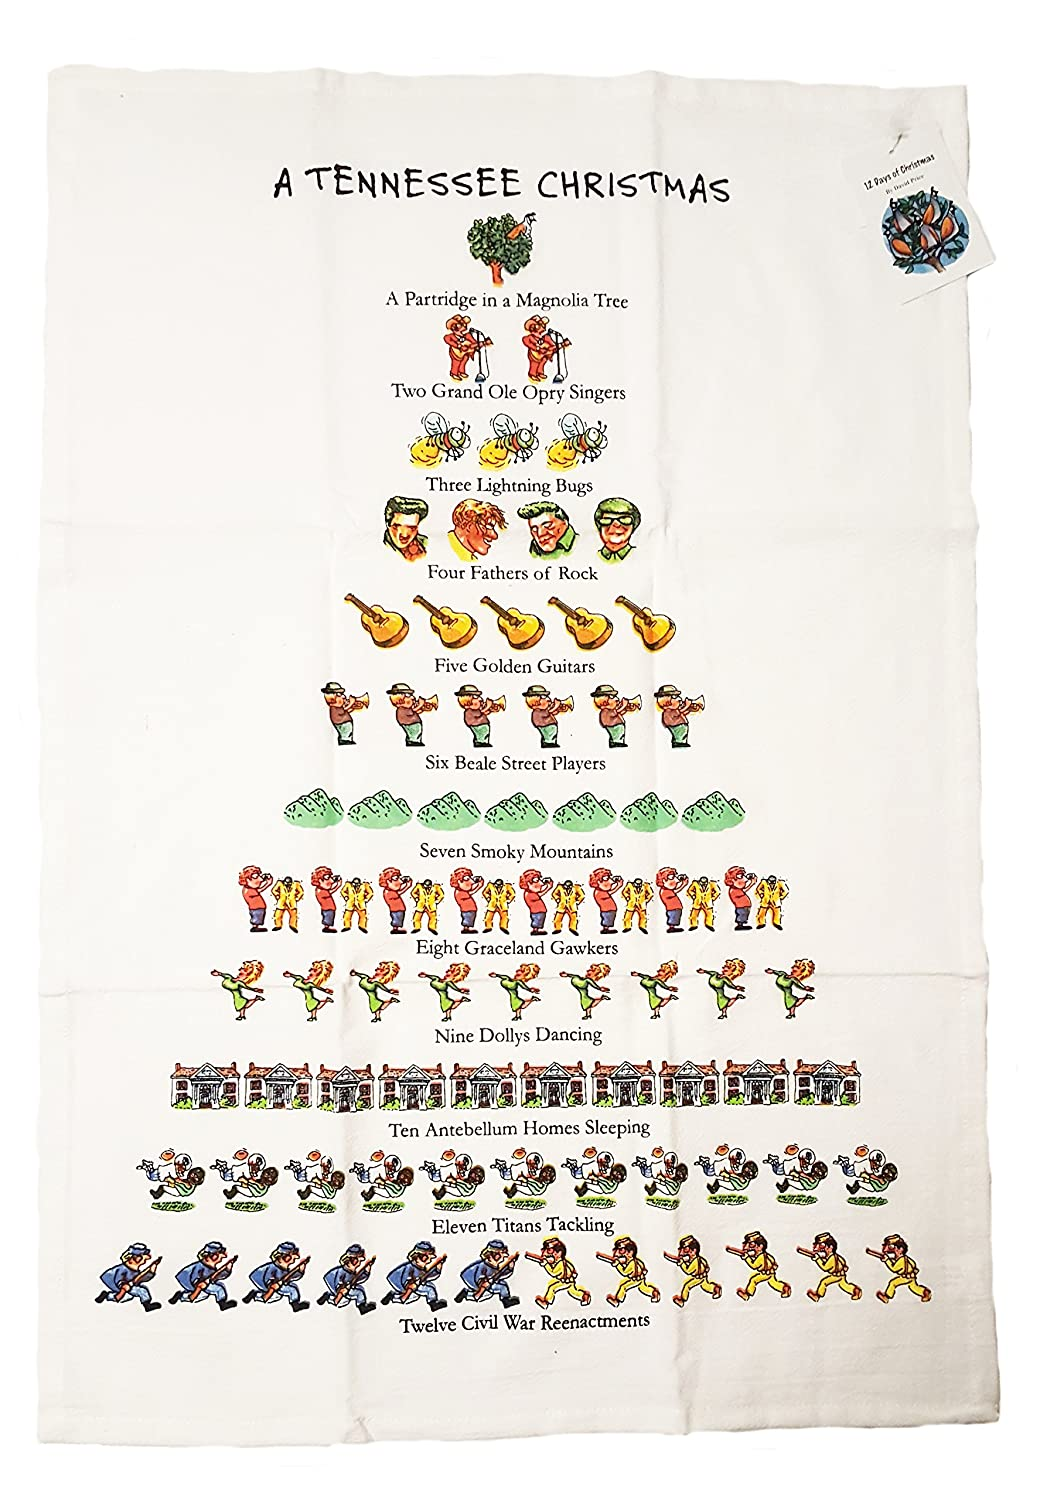 amazoncom a tennessee christmas dish towel home kitchen - Tennessee Christmas